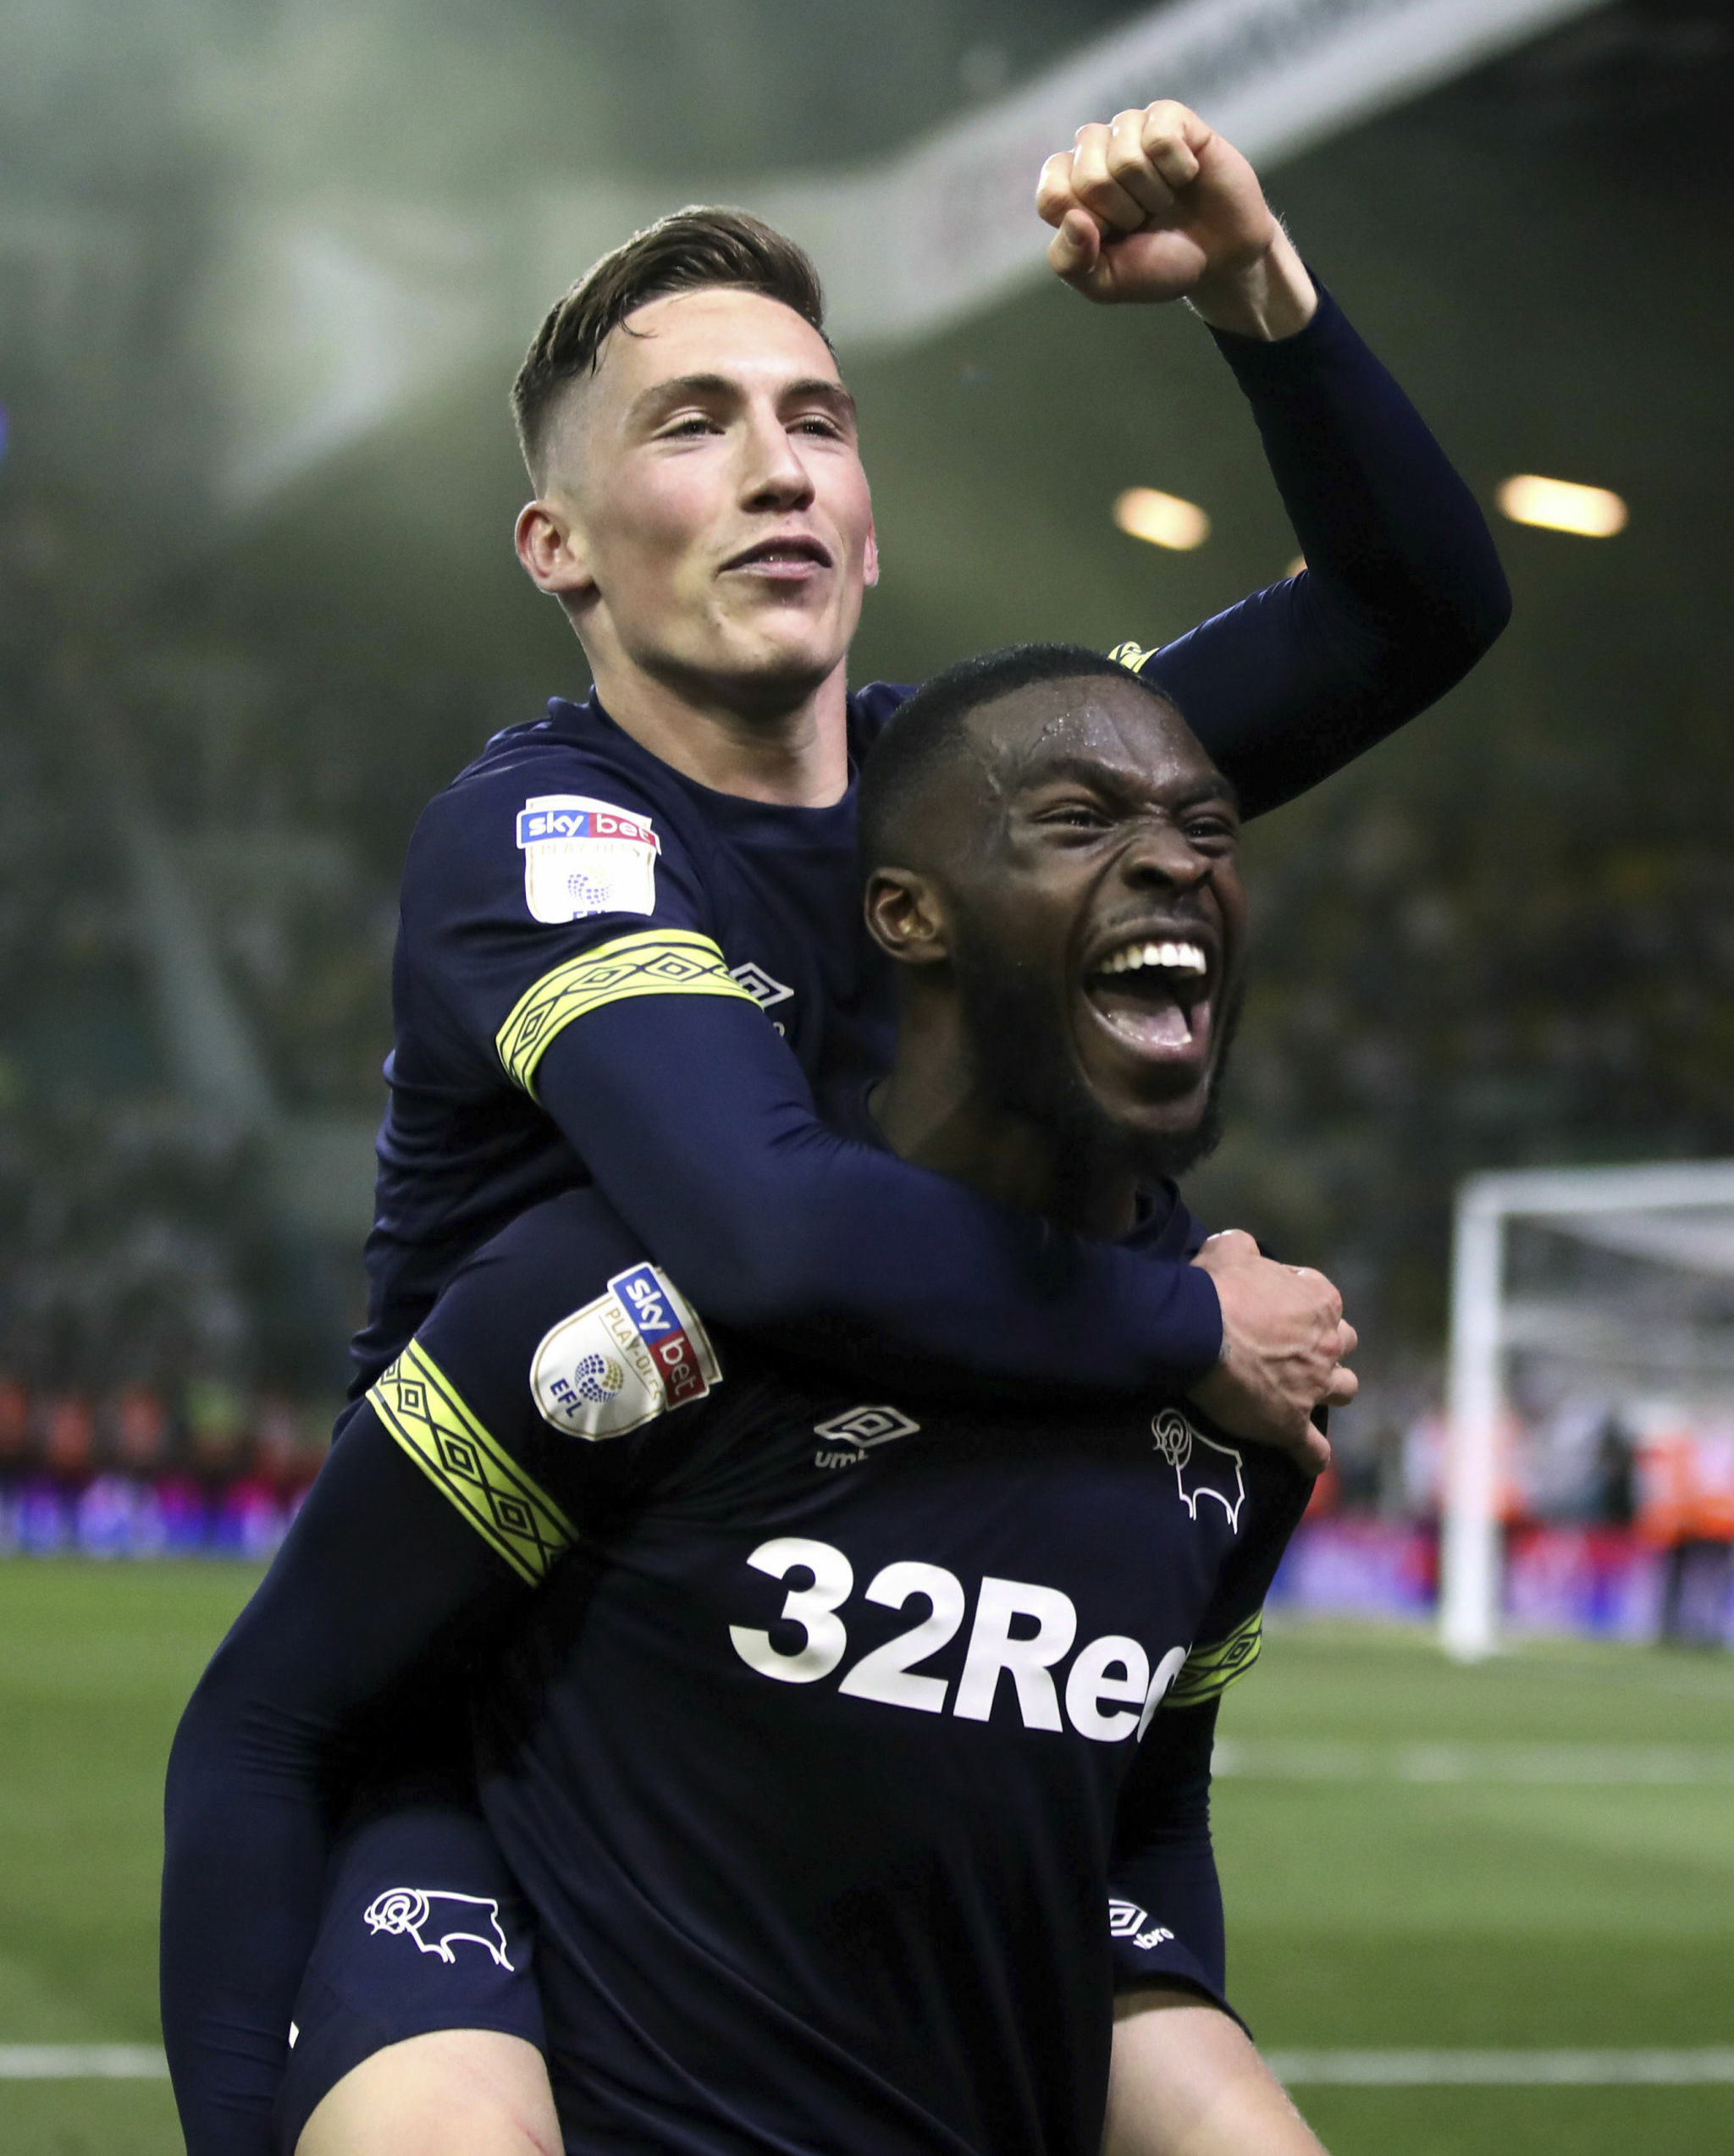 Derby County's Harry Wilson, left, and Fikayo Tomori celebrate victory after the English Championship Play-Off, Semi Final, Second Leg soccer match against Leeds United at Elland Road, Leeds, England, Wednesday May 15, 2019